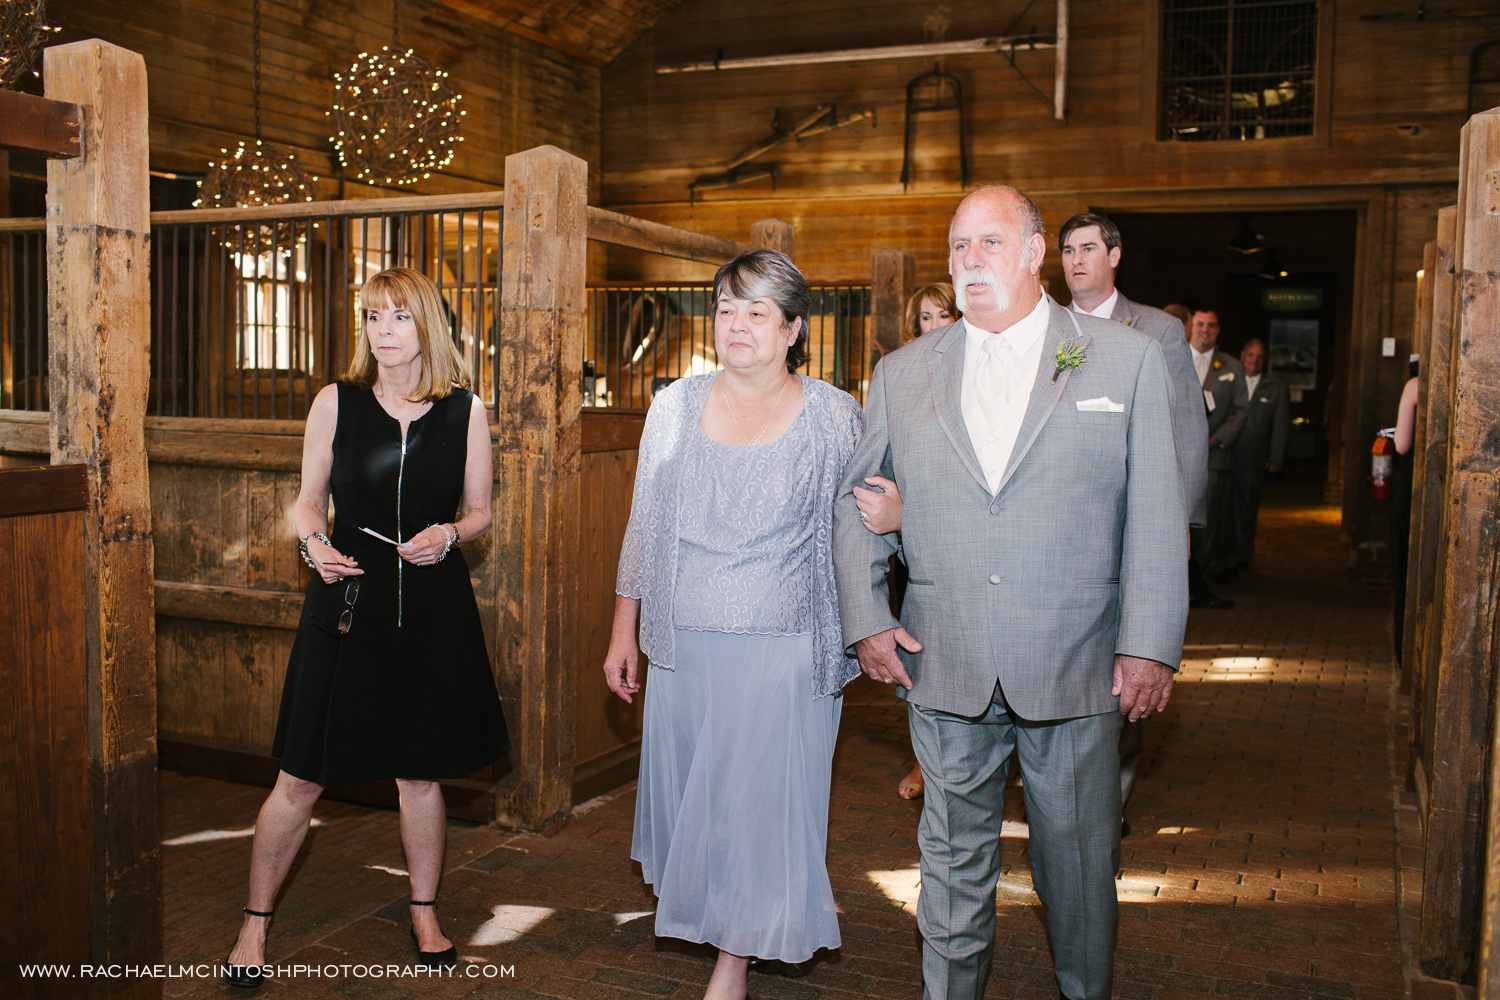 Biltmore Antler Barn Wedding-52.jpg